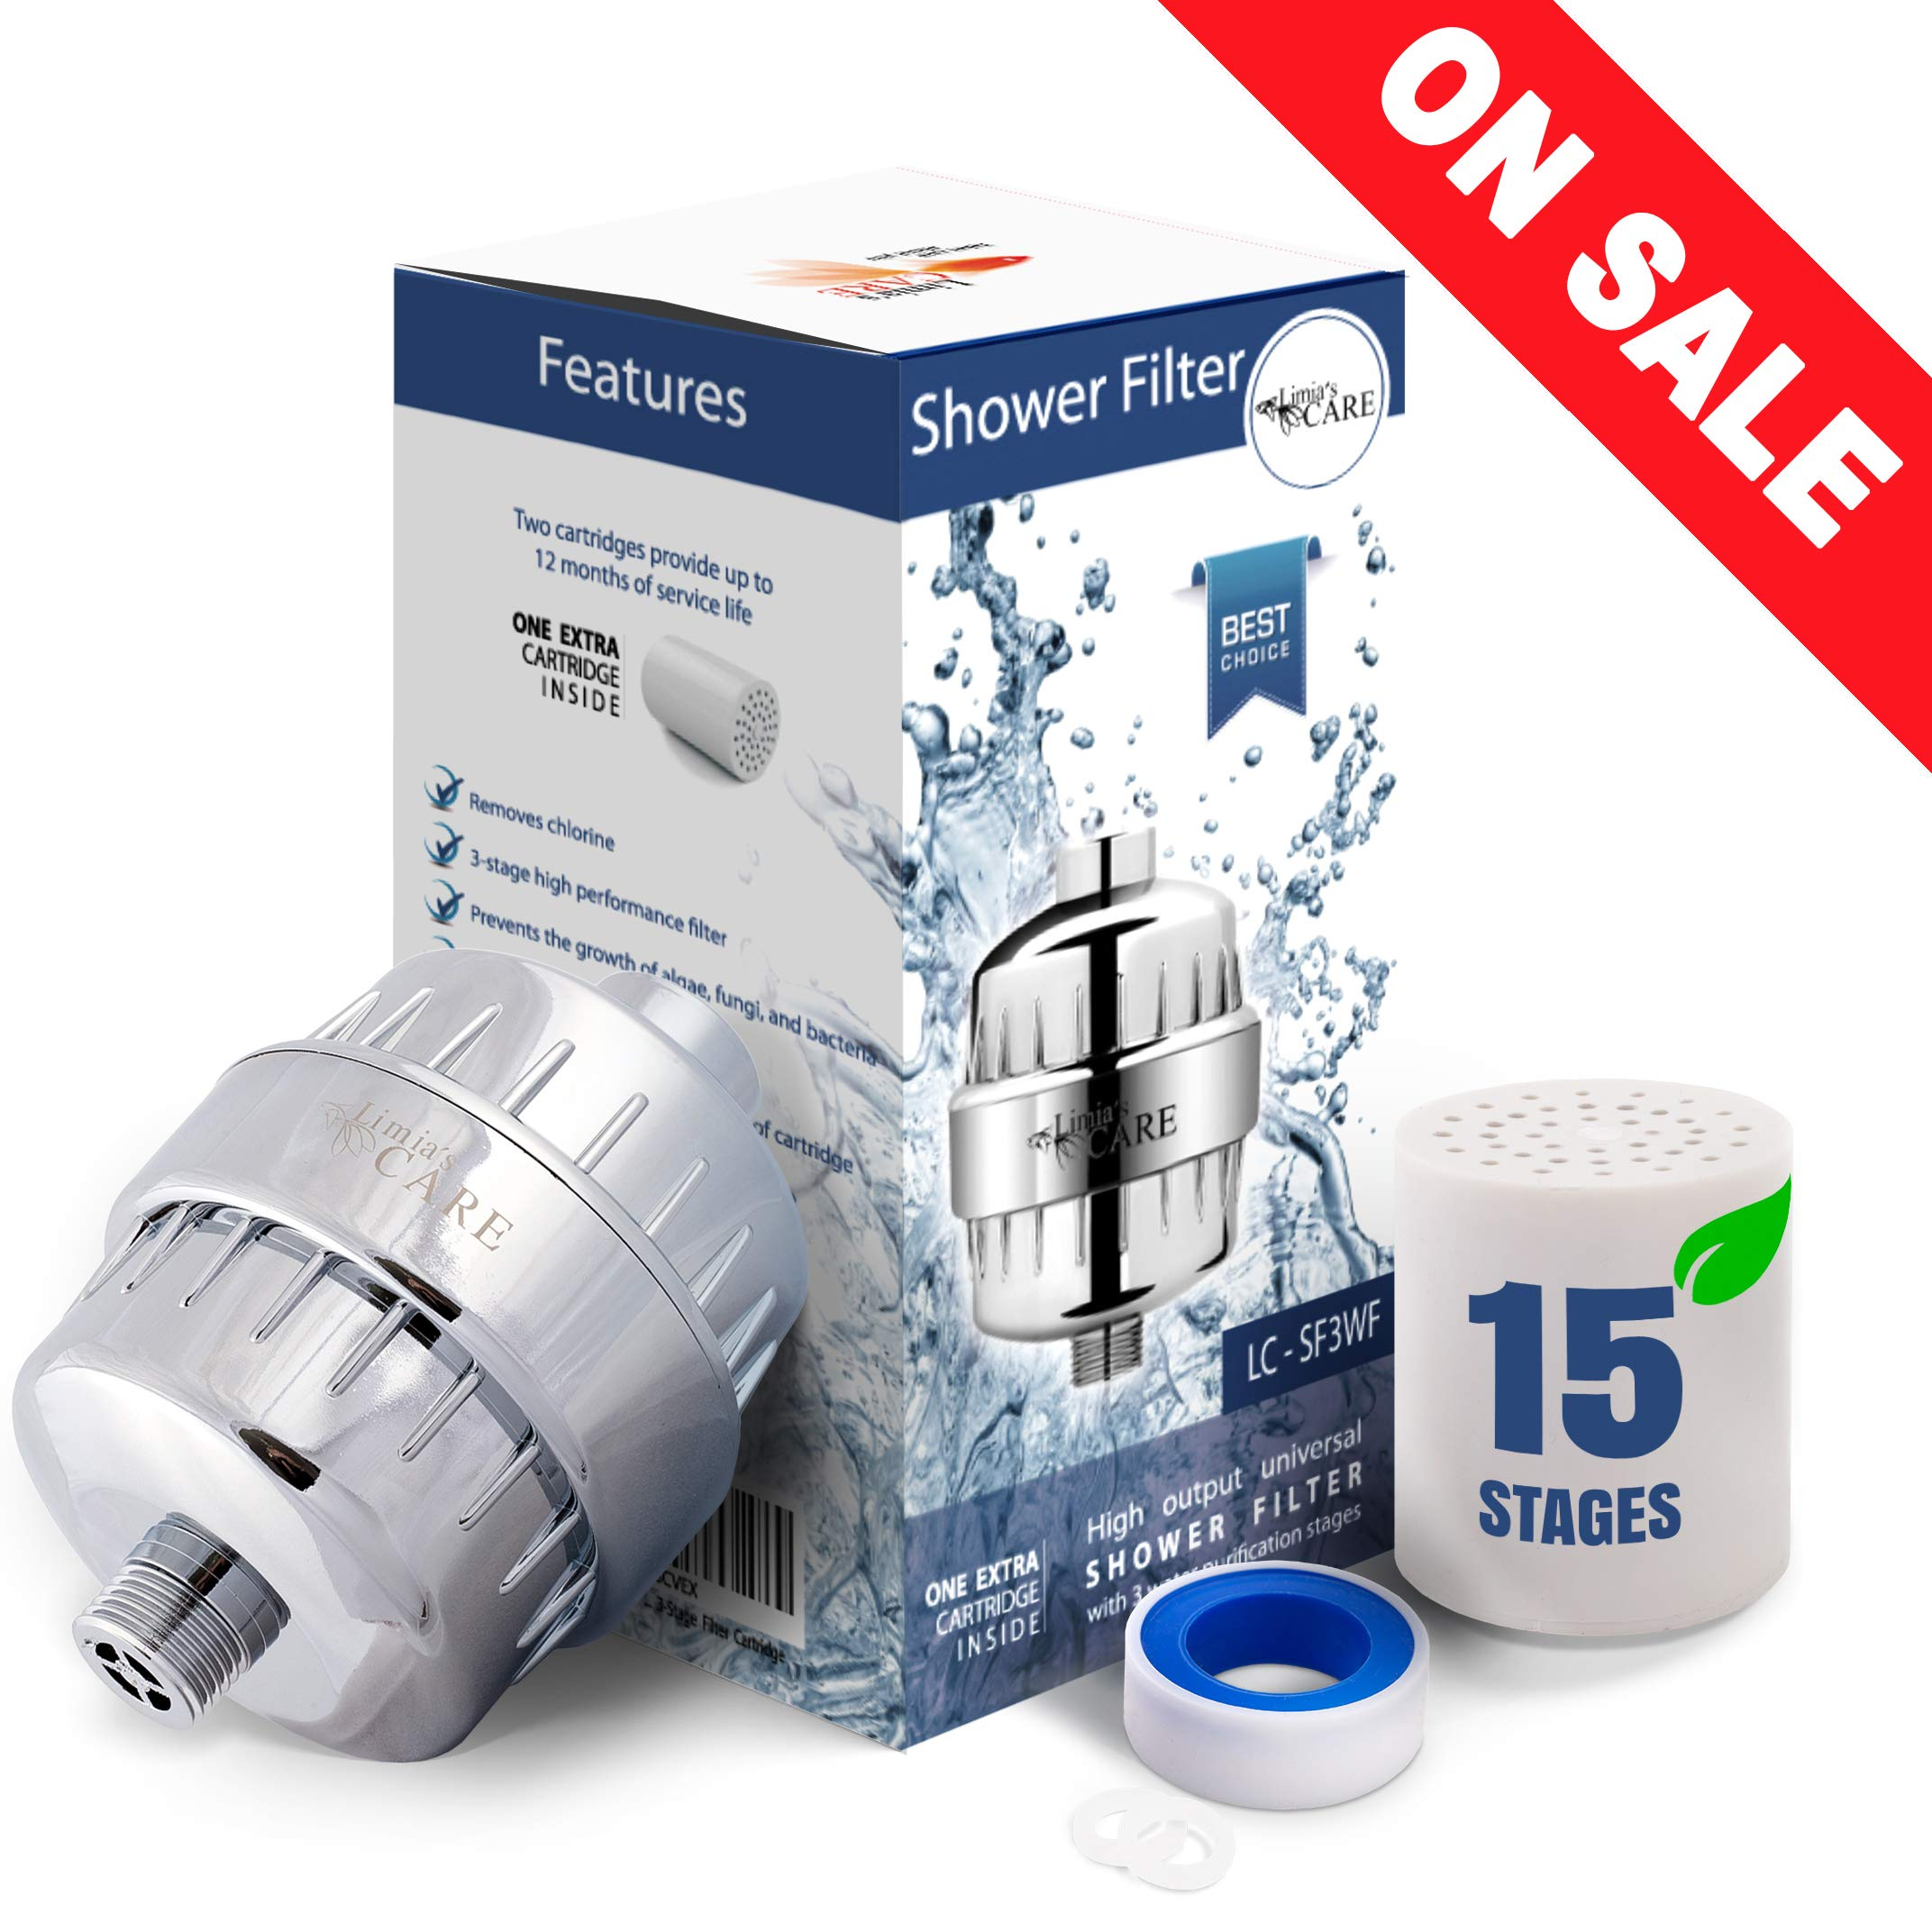 15 Stage Shower Filter - Shower Head Filter - Chlorine Filter - Hard Water Filter - Water Softener - Showerhead Filter - 2 Replaceable Filter Cartridges - Water Filter For Shower Head by Limia's Care